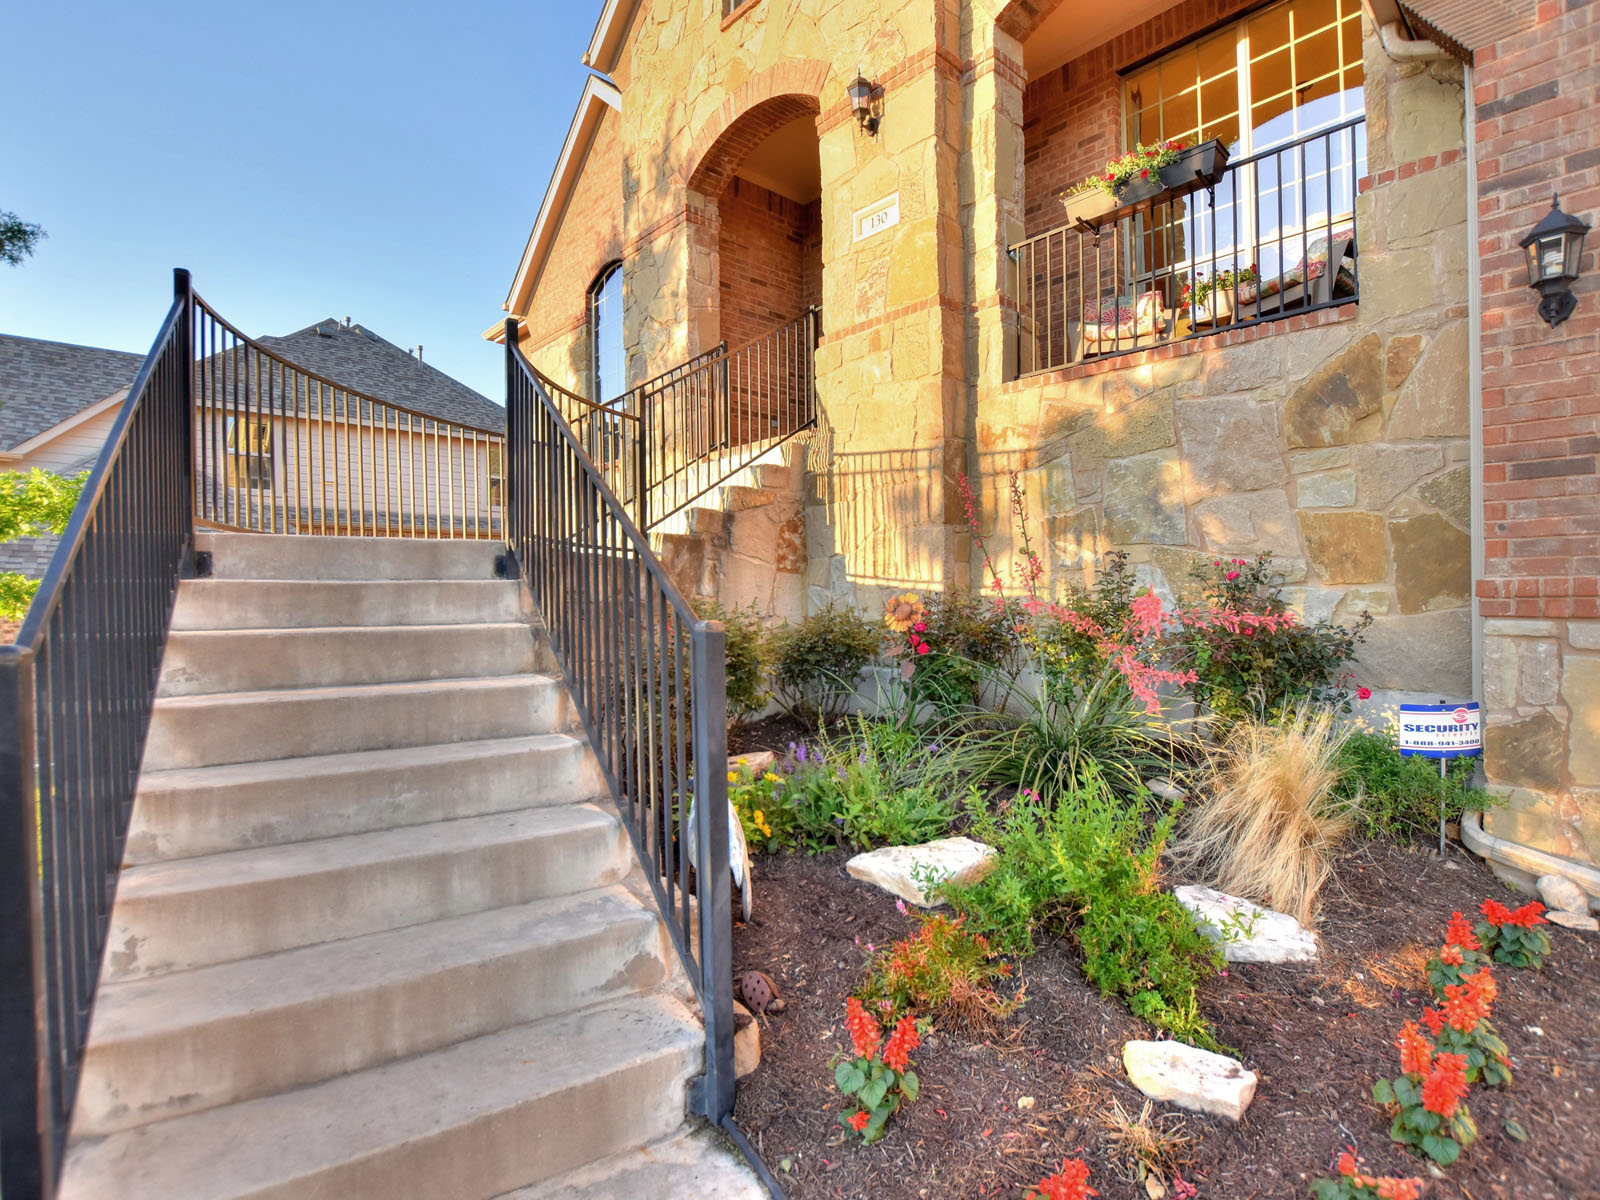 Additional photo for property listing at 130 Empire, Austin 130 Empire Ct Austin, Texas 78737 United States